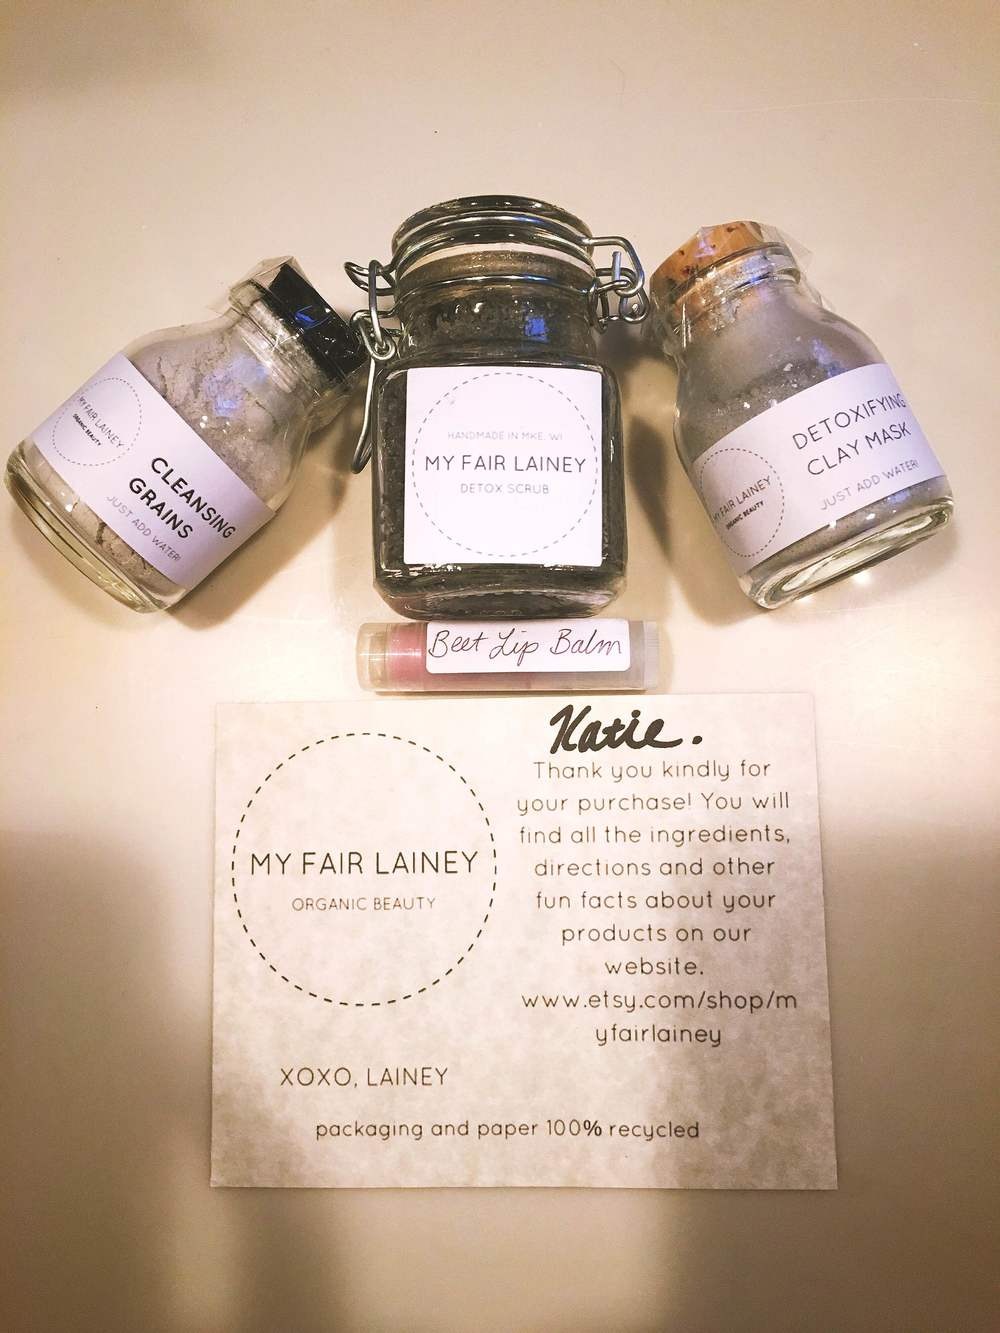 This vegan girl loves all natural and cruelty free products and when they are handmade by someone you know that is even better! I tried a few of the My Fair Lainey products and I have to say that I am HOOKED.